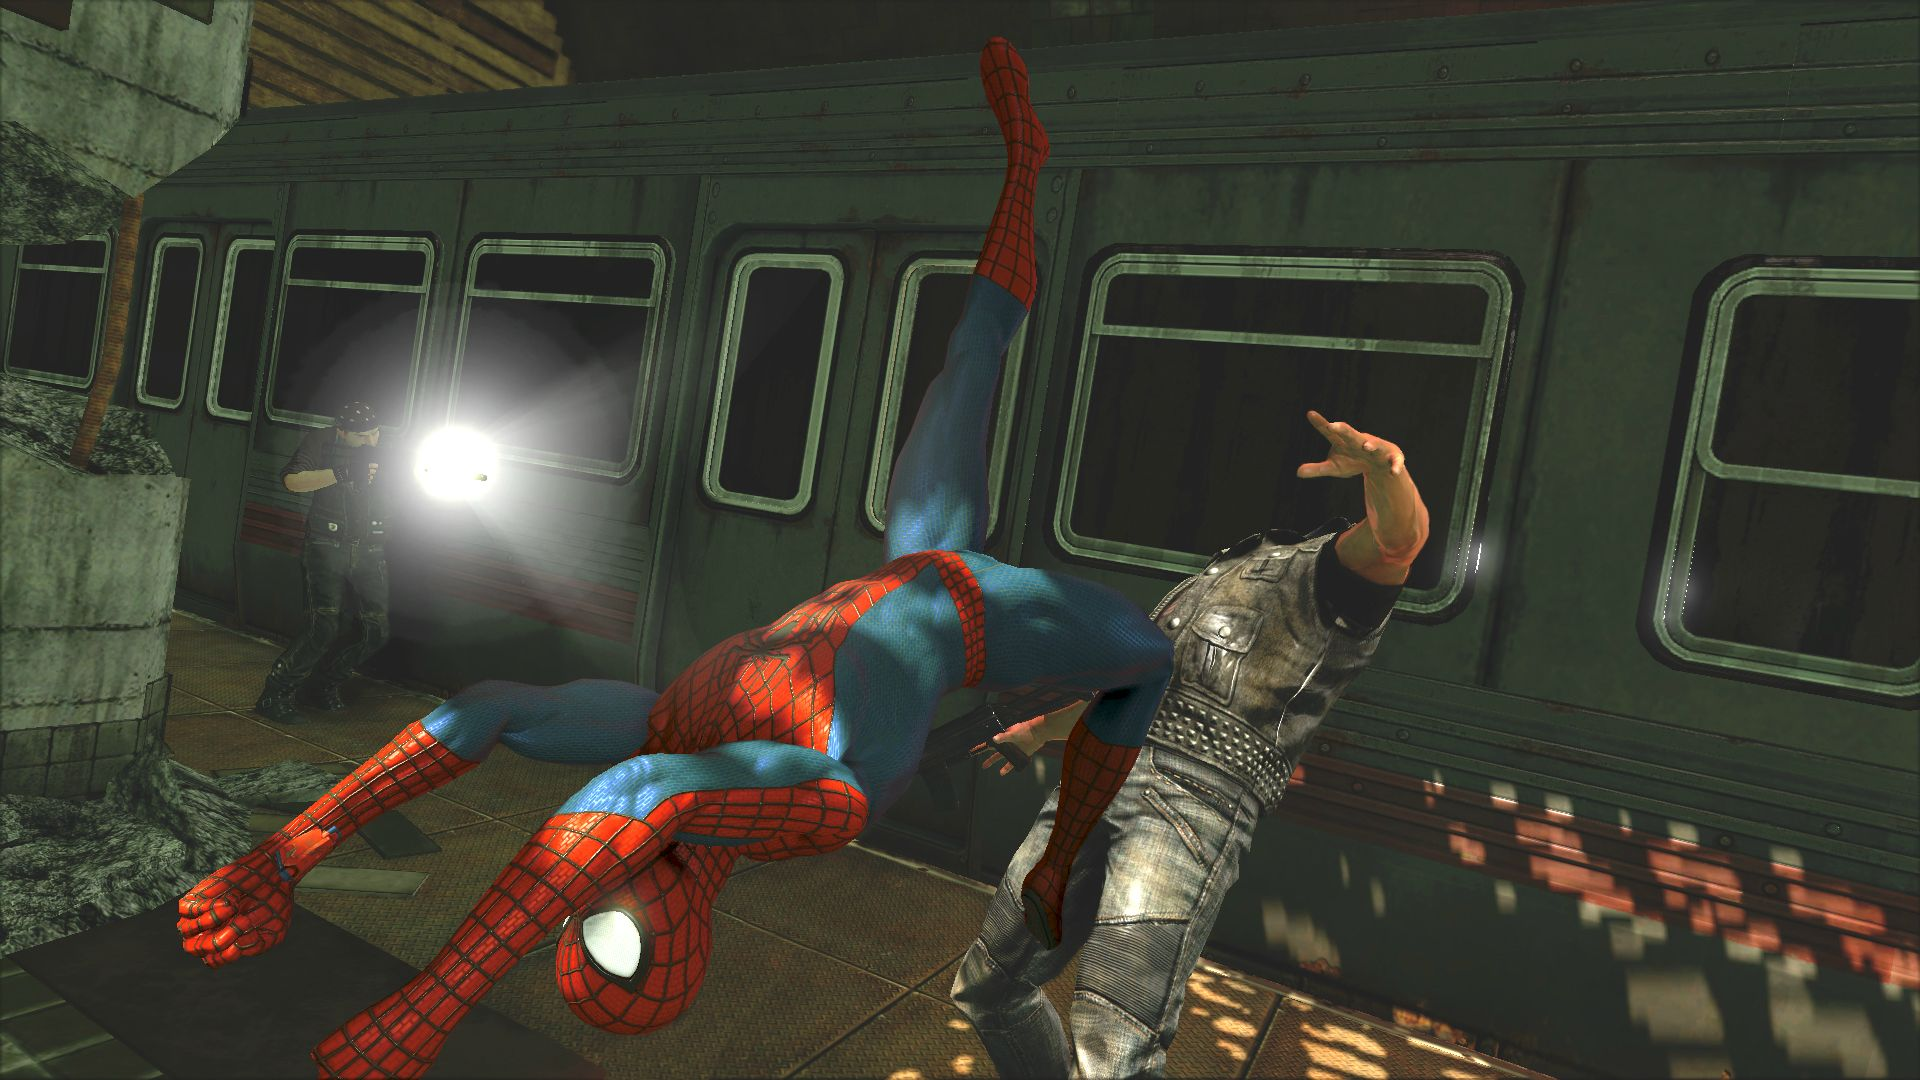 Screenshot for the game The Amazing Spider-Man 2 (2014) РС | RePack от R.G. Механики